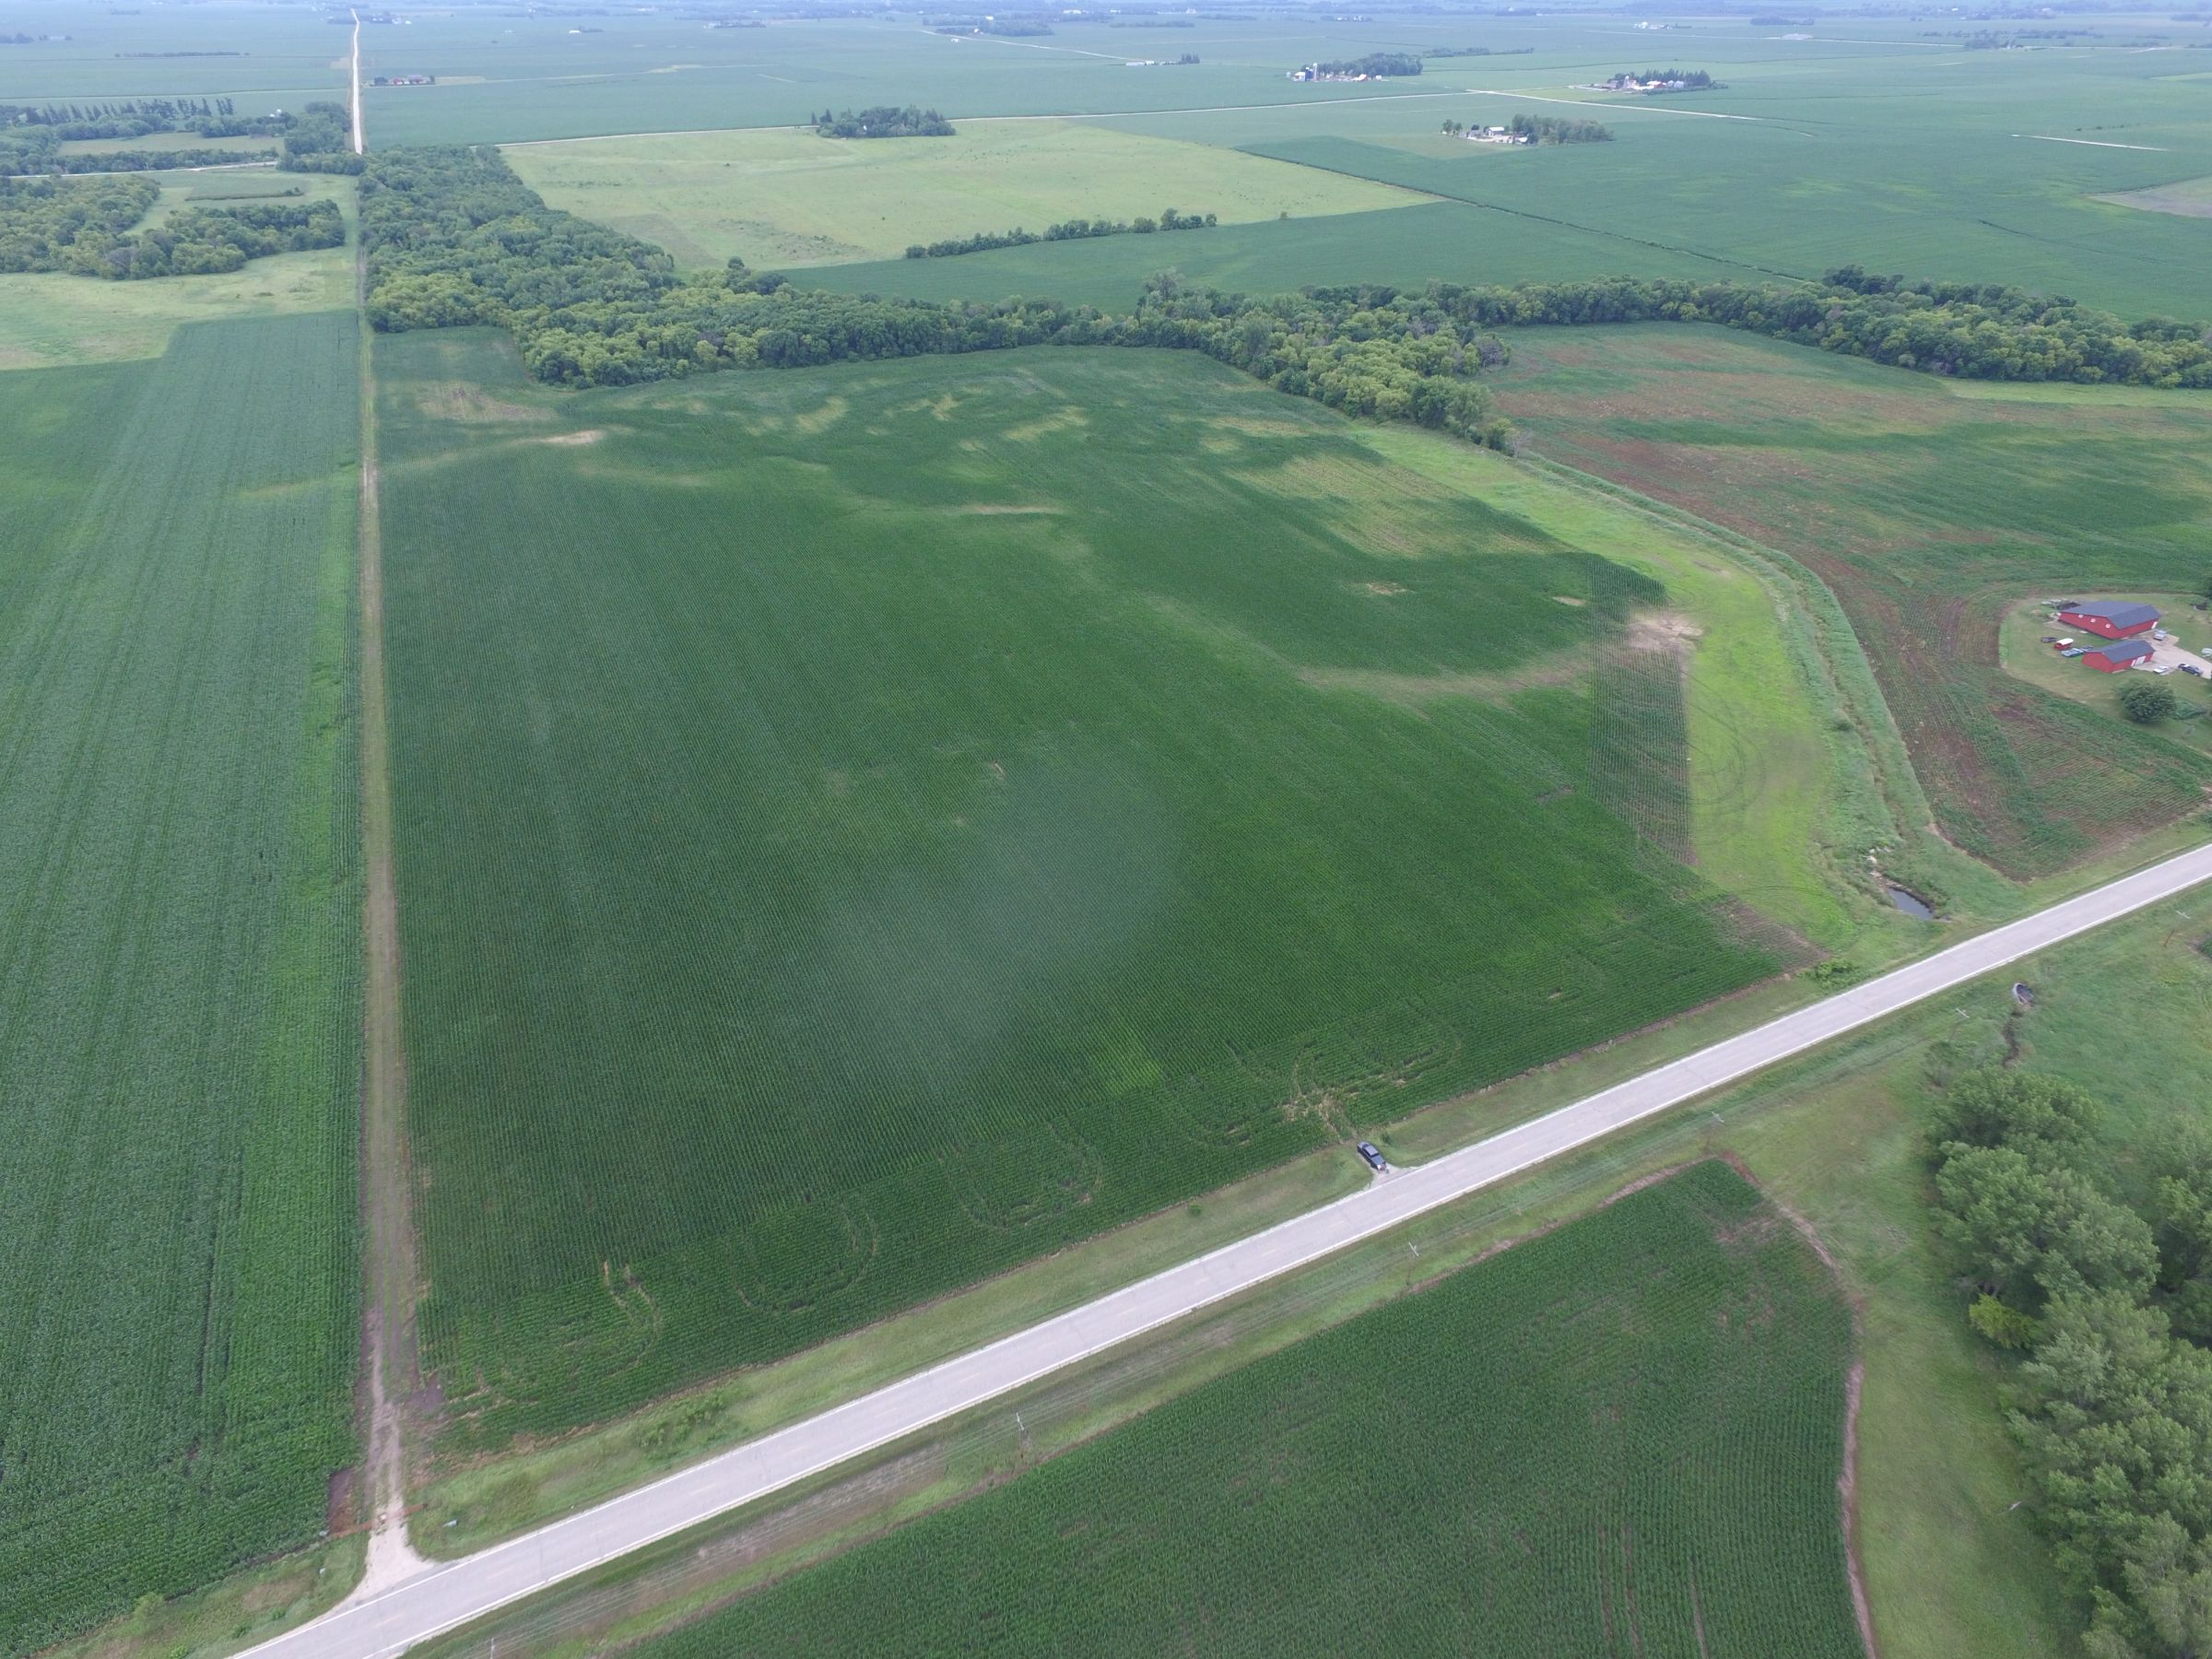 auctions-land-floyd-county-iowa-112-acres-listing-number-15630-10-2021-07-13-192253.JPG